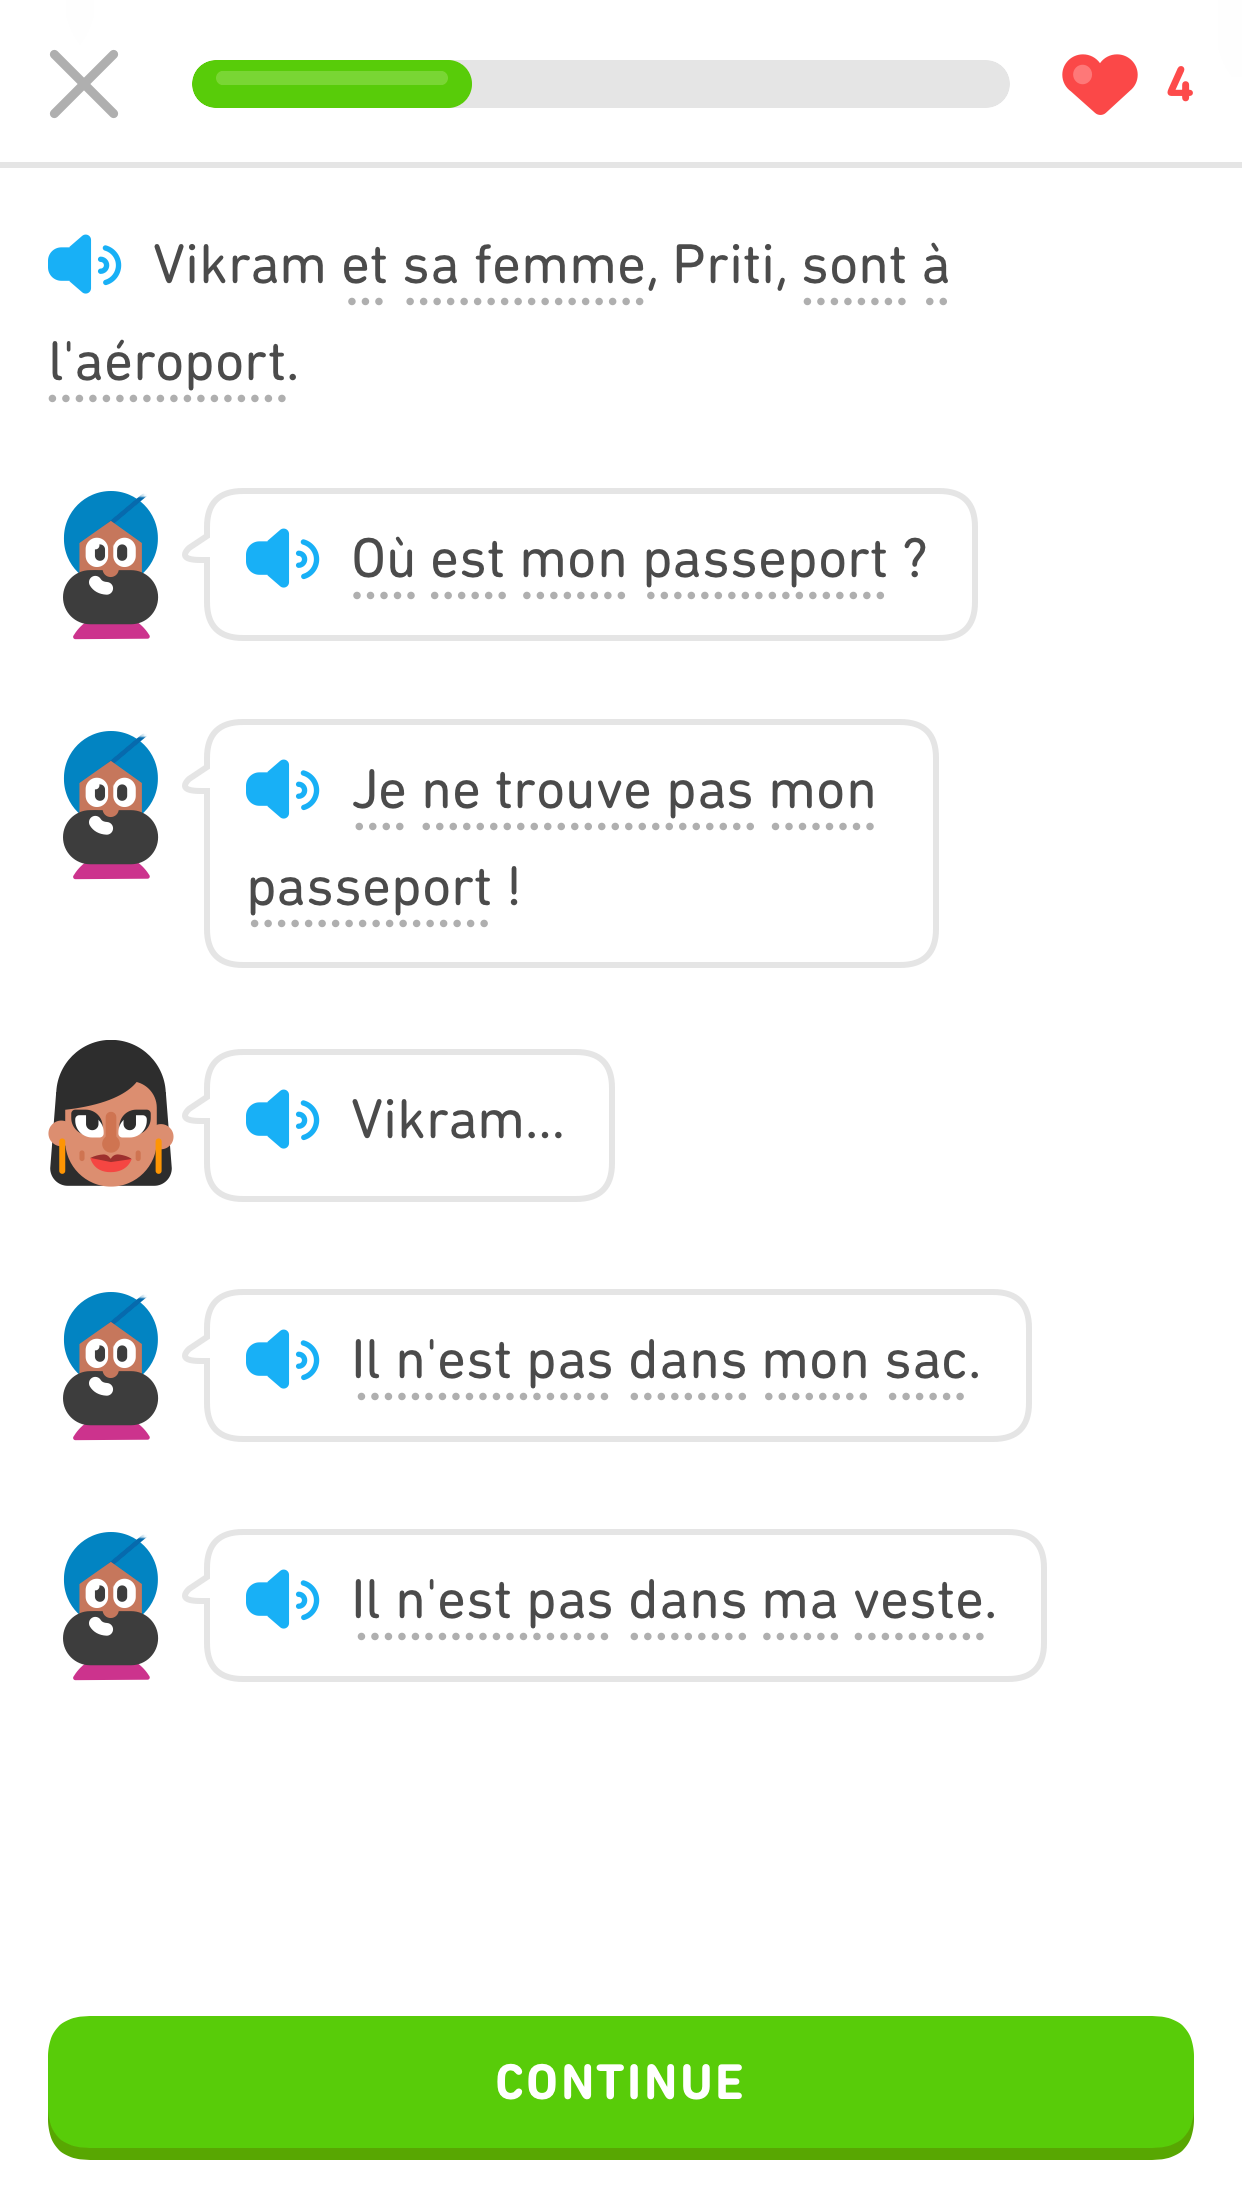 screenshot of a Duolingo Story in French showing a written conversation between the Duolingo character Vikram and his wife, represented by speech bubbles